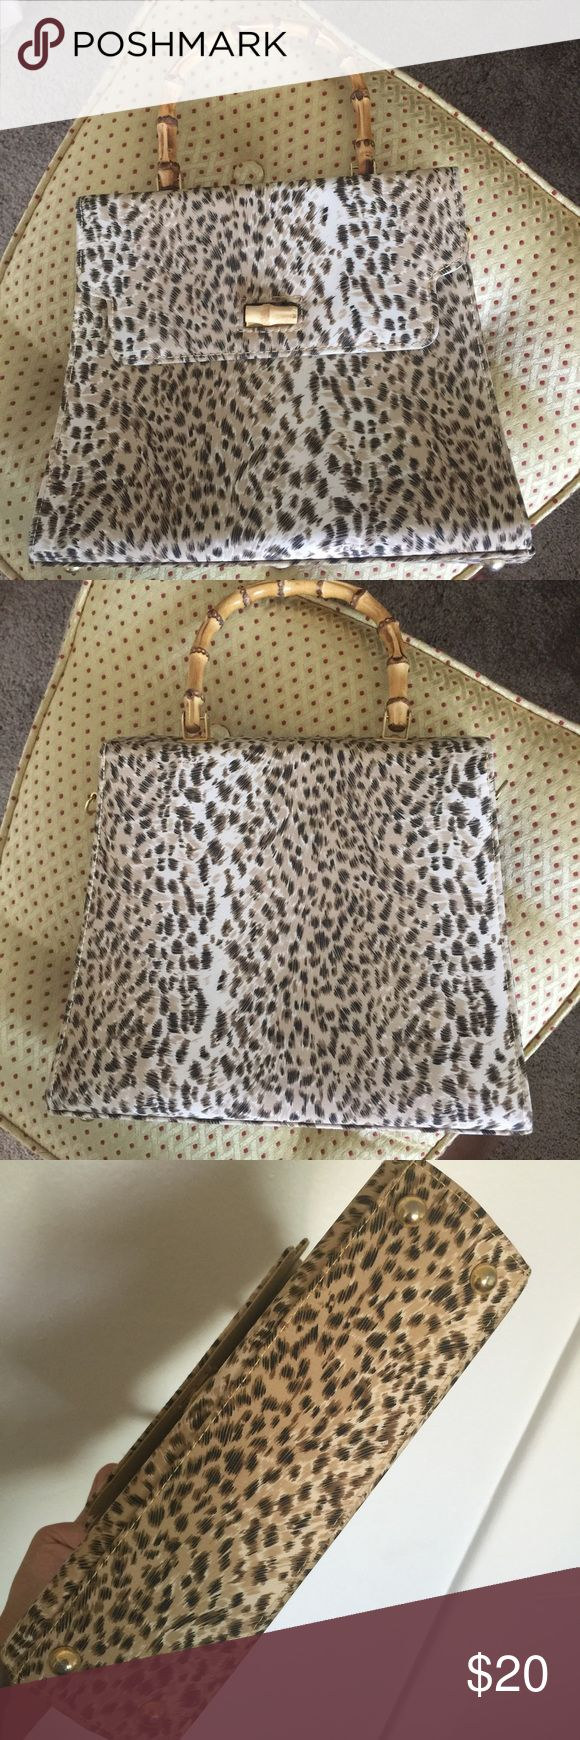 Debenhams leopard hand bag Debenhams leopard hand bag with bamboo handle. Inside has a few marks on it from normal wear but otherwise in good condition. Debenhams Bags Mini Bags